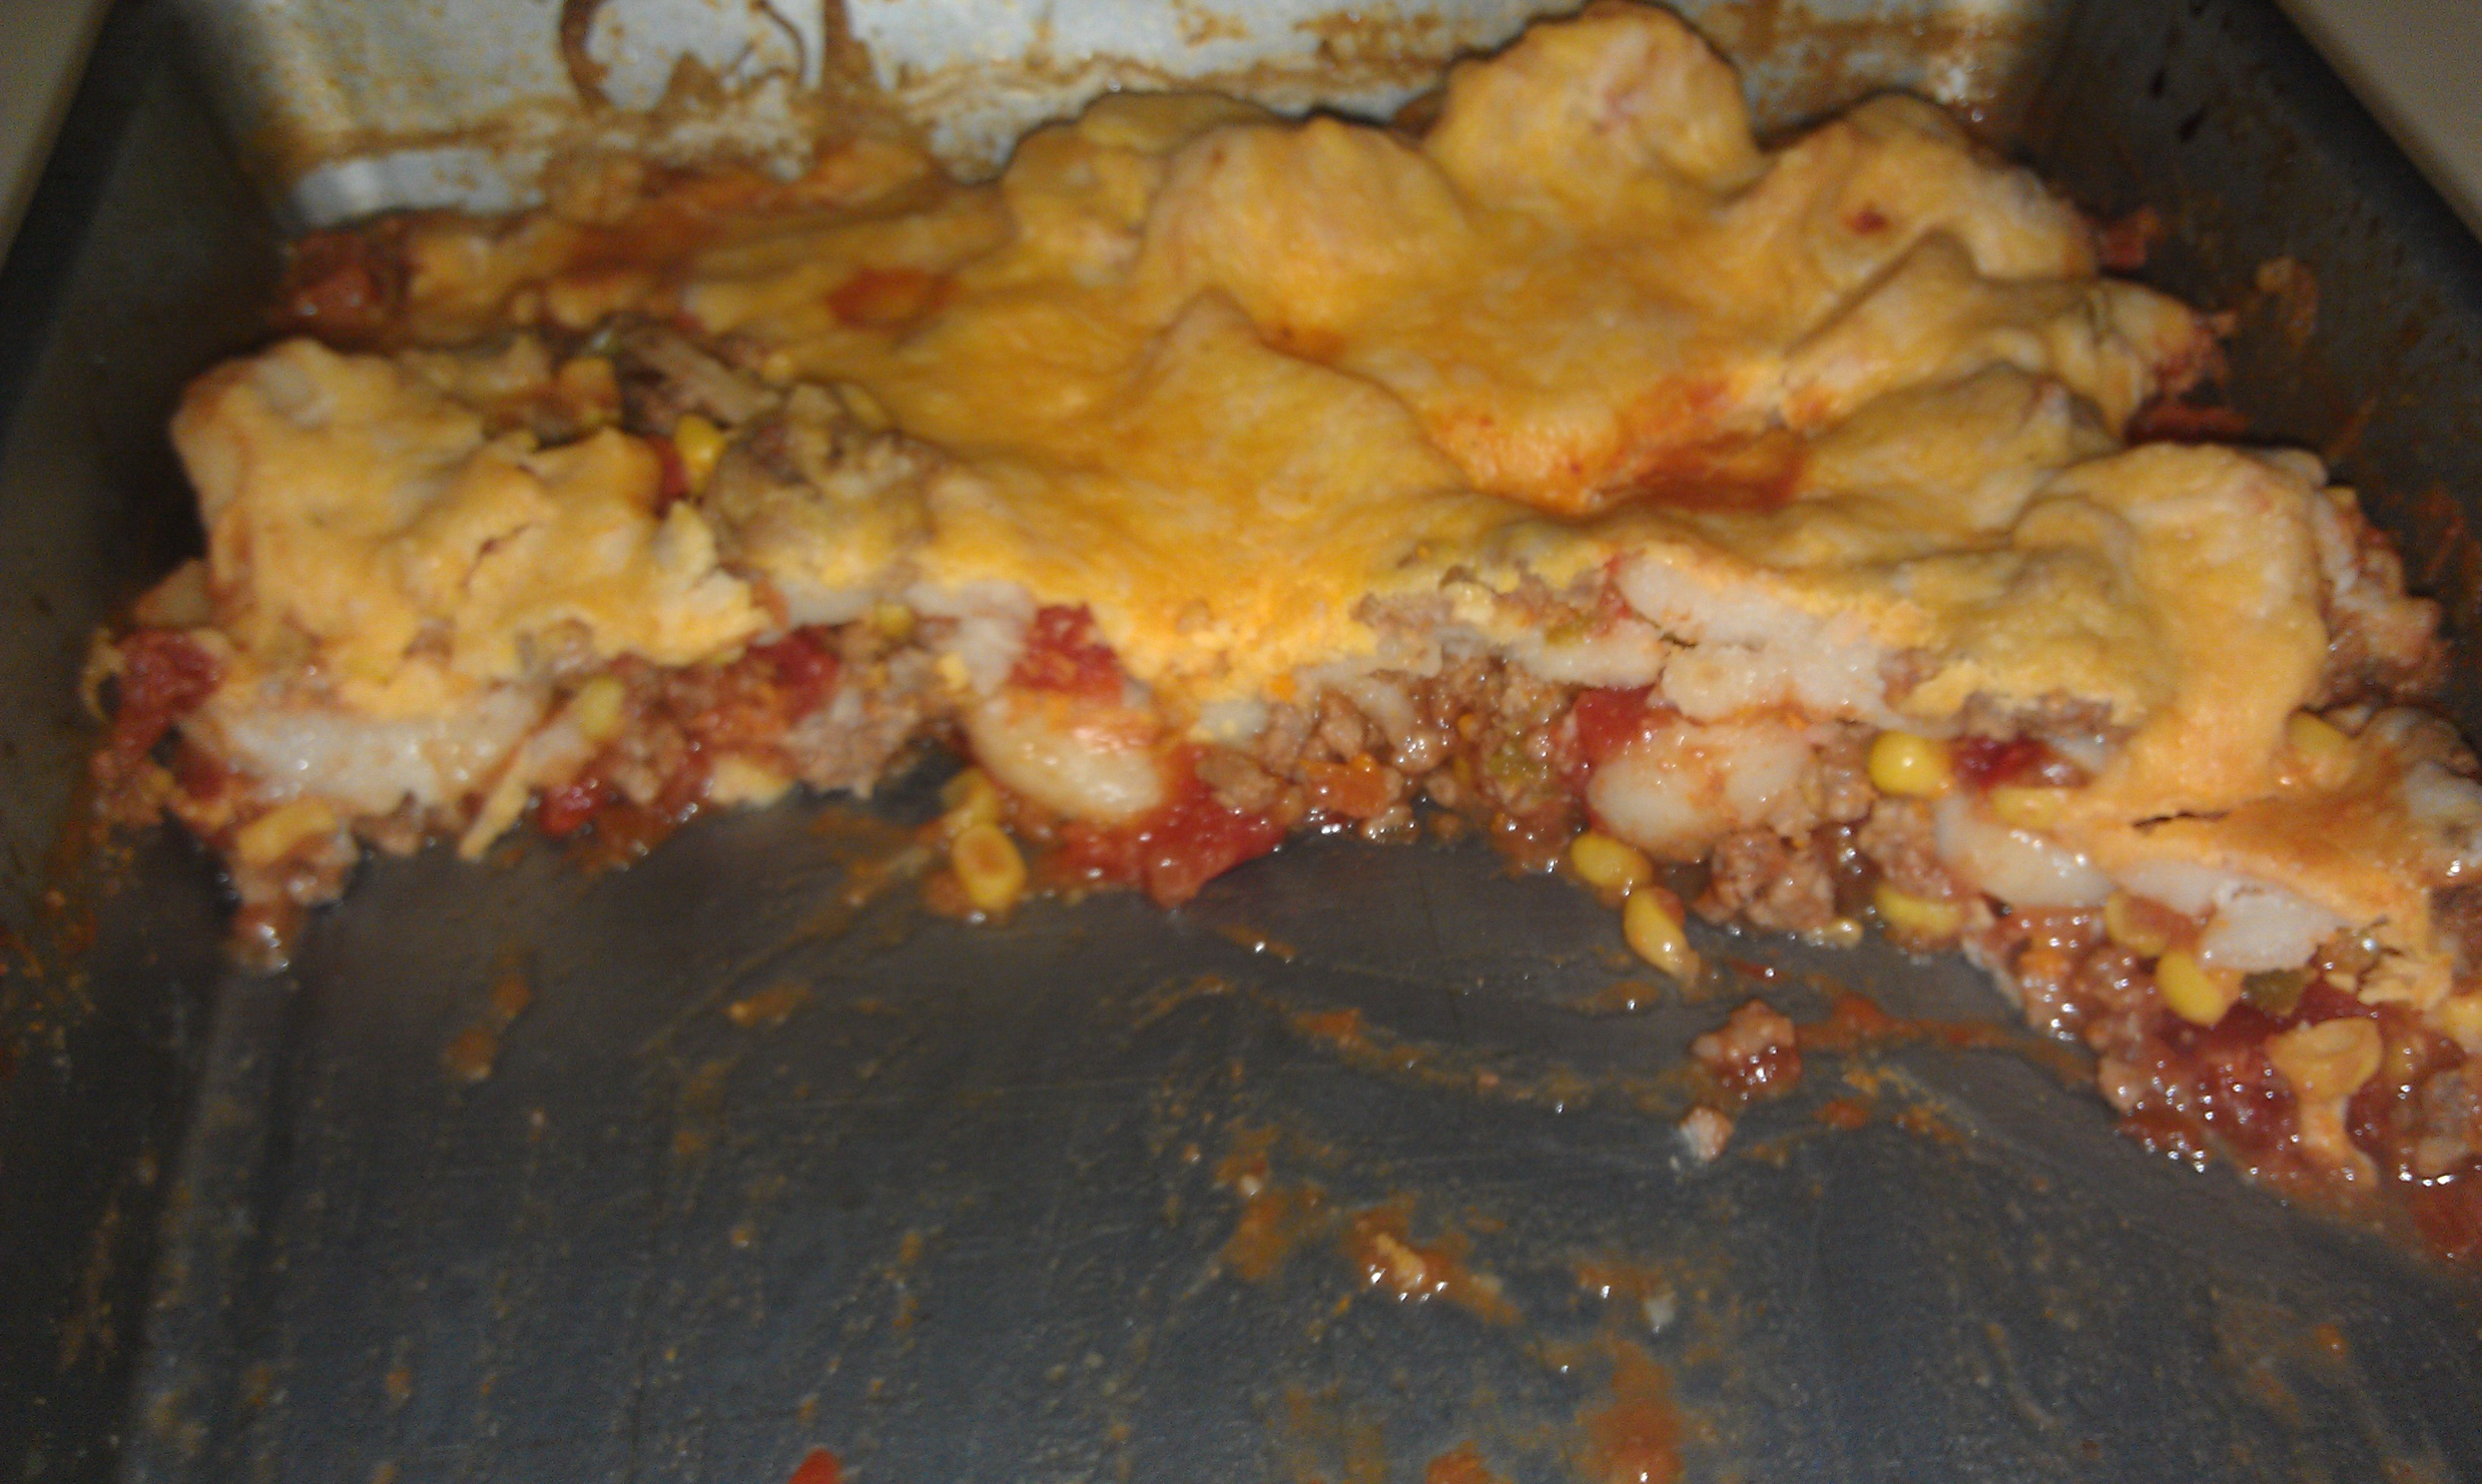 Corn Casserole 1 Pound Browned Ground Beef 1 Can Mexicorn 1 Can 14oz Diced Tomatoes 1 Small Can Tomato Sauce 2 C Canned Tomato Sauce Corn Casserole Food